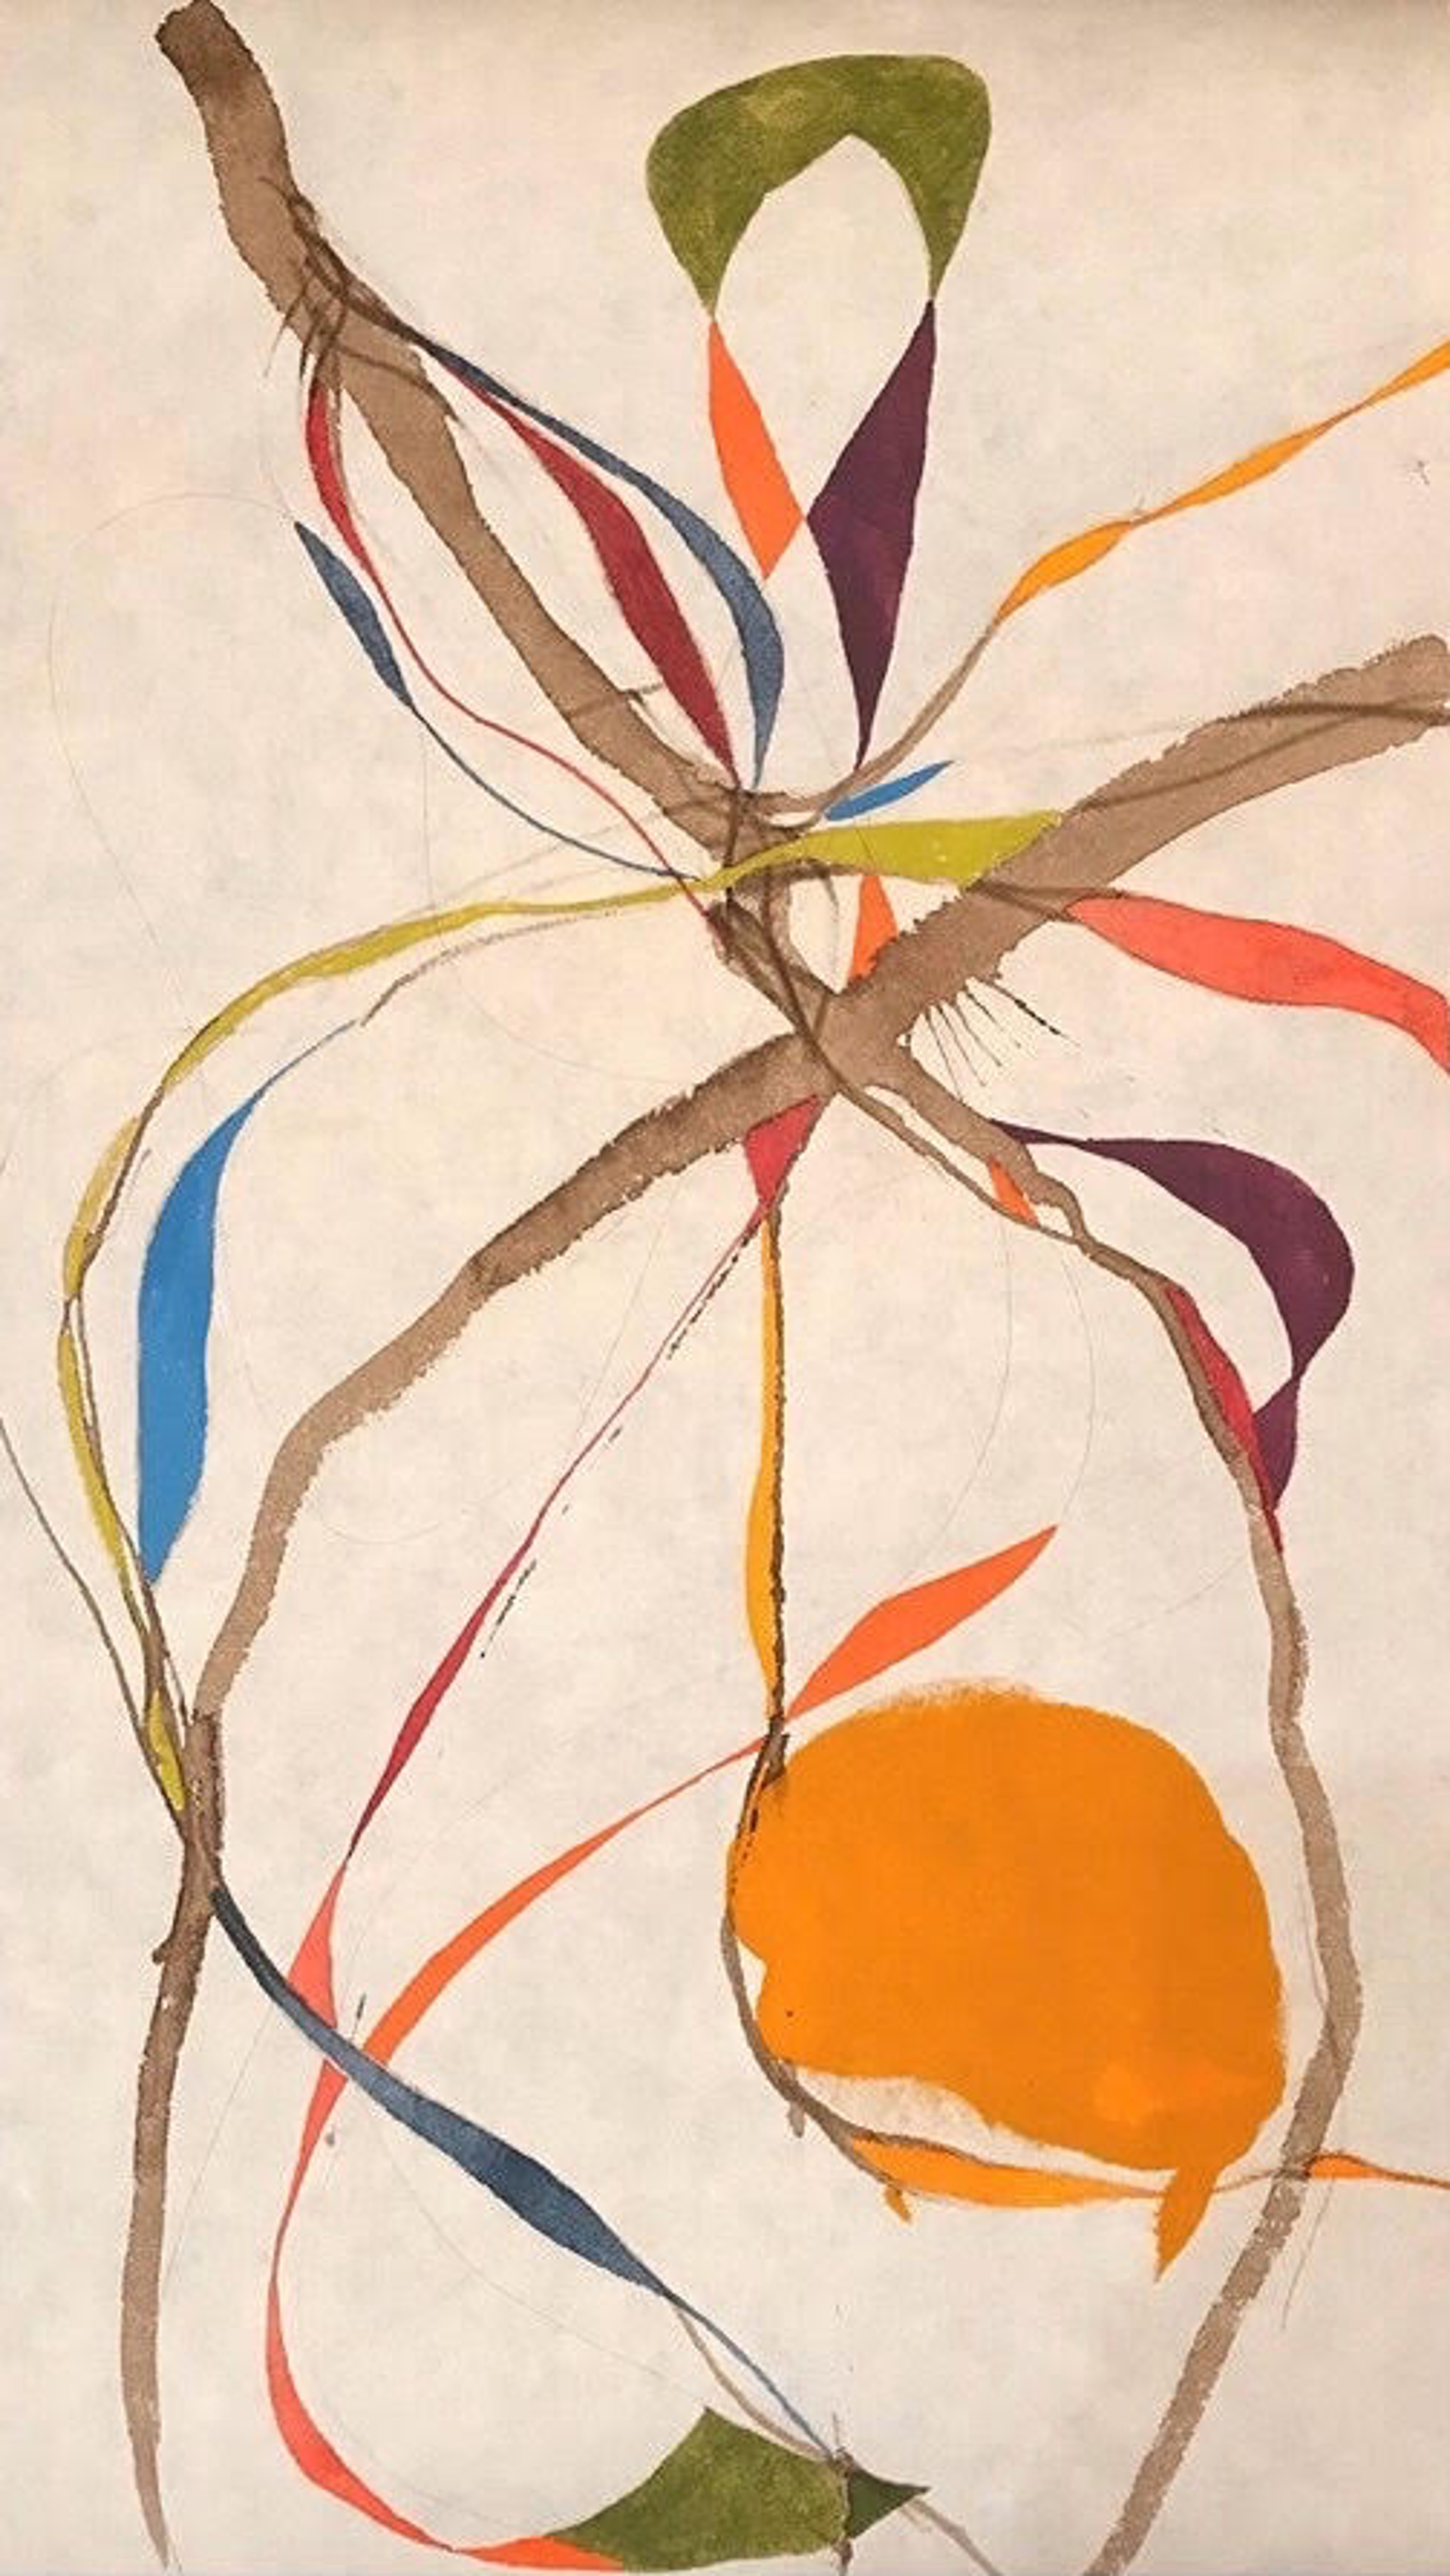 Untitled 5 by Tracey Adams